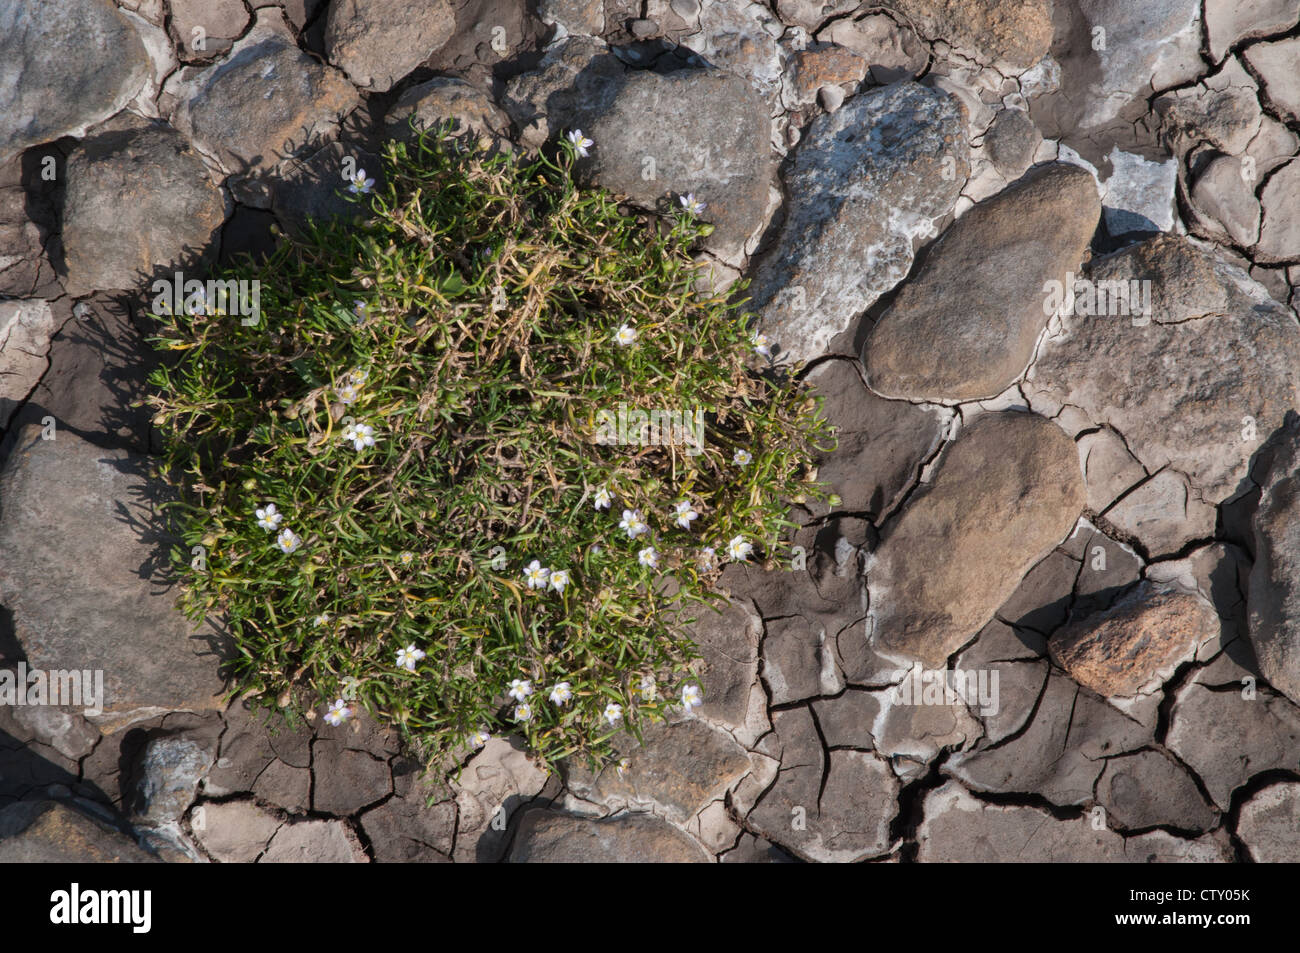 river bed with plant life pebbles no water rocks marine flora - Stock Image